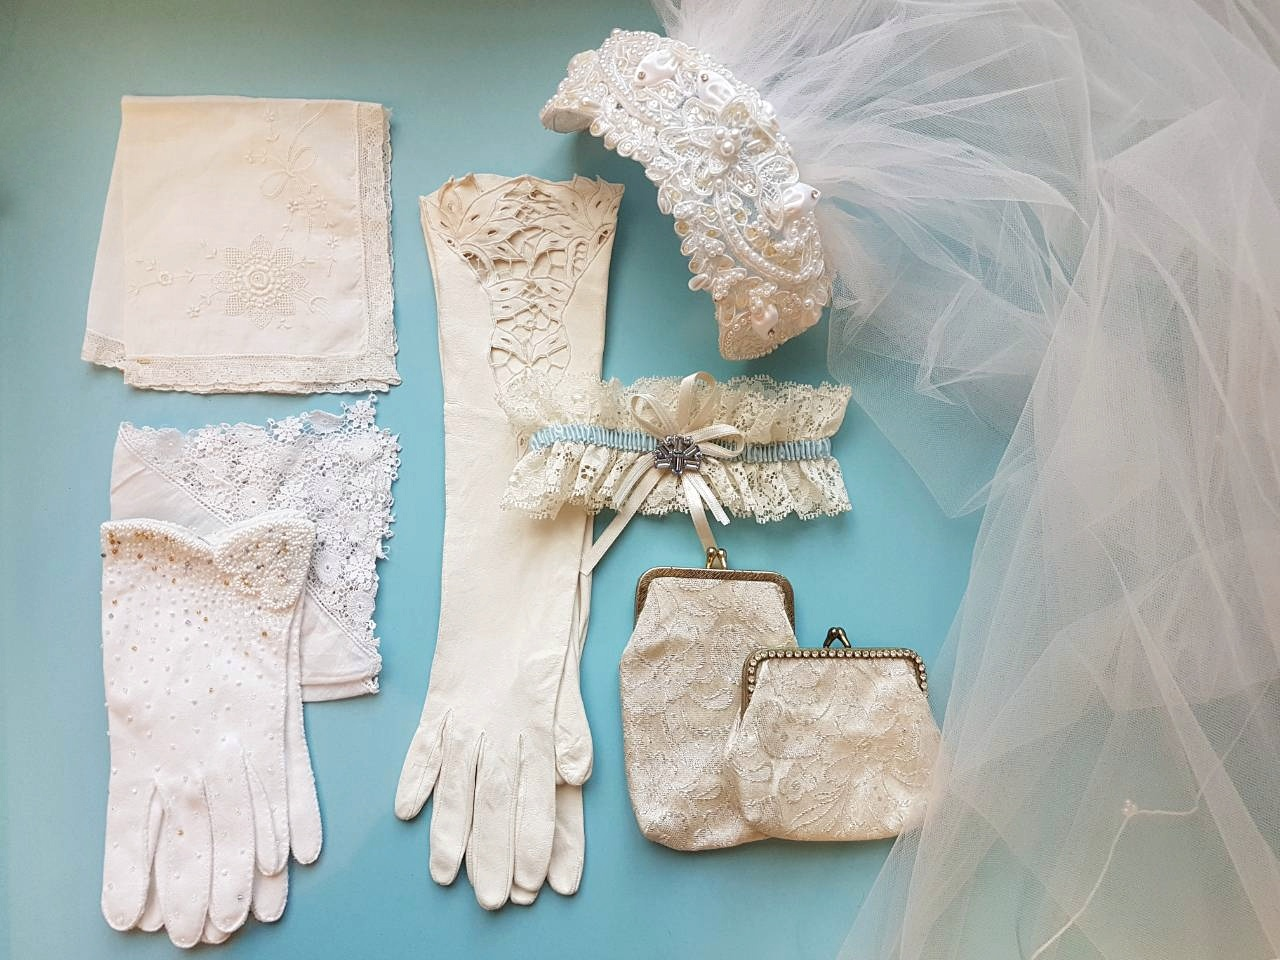 Vintage Keepsakes   A little treasure you can wear and keep as a reminder makes a wonderful gift for any bride. Think vintage garters, Art Deco coin purses and delicate lace handkerchiefs.